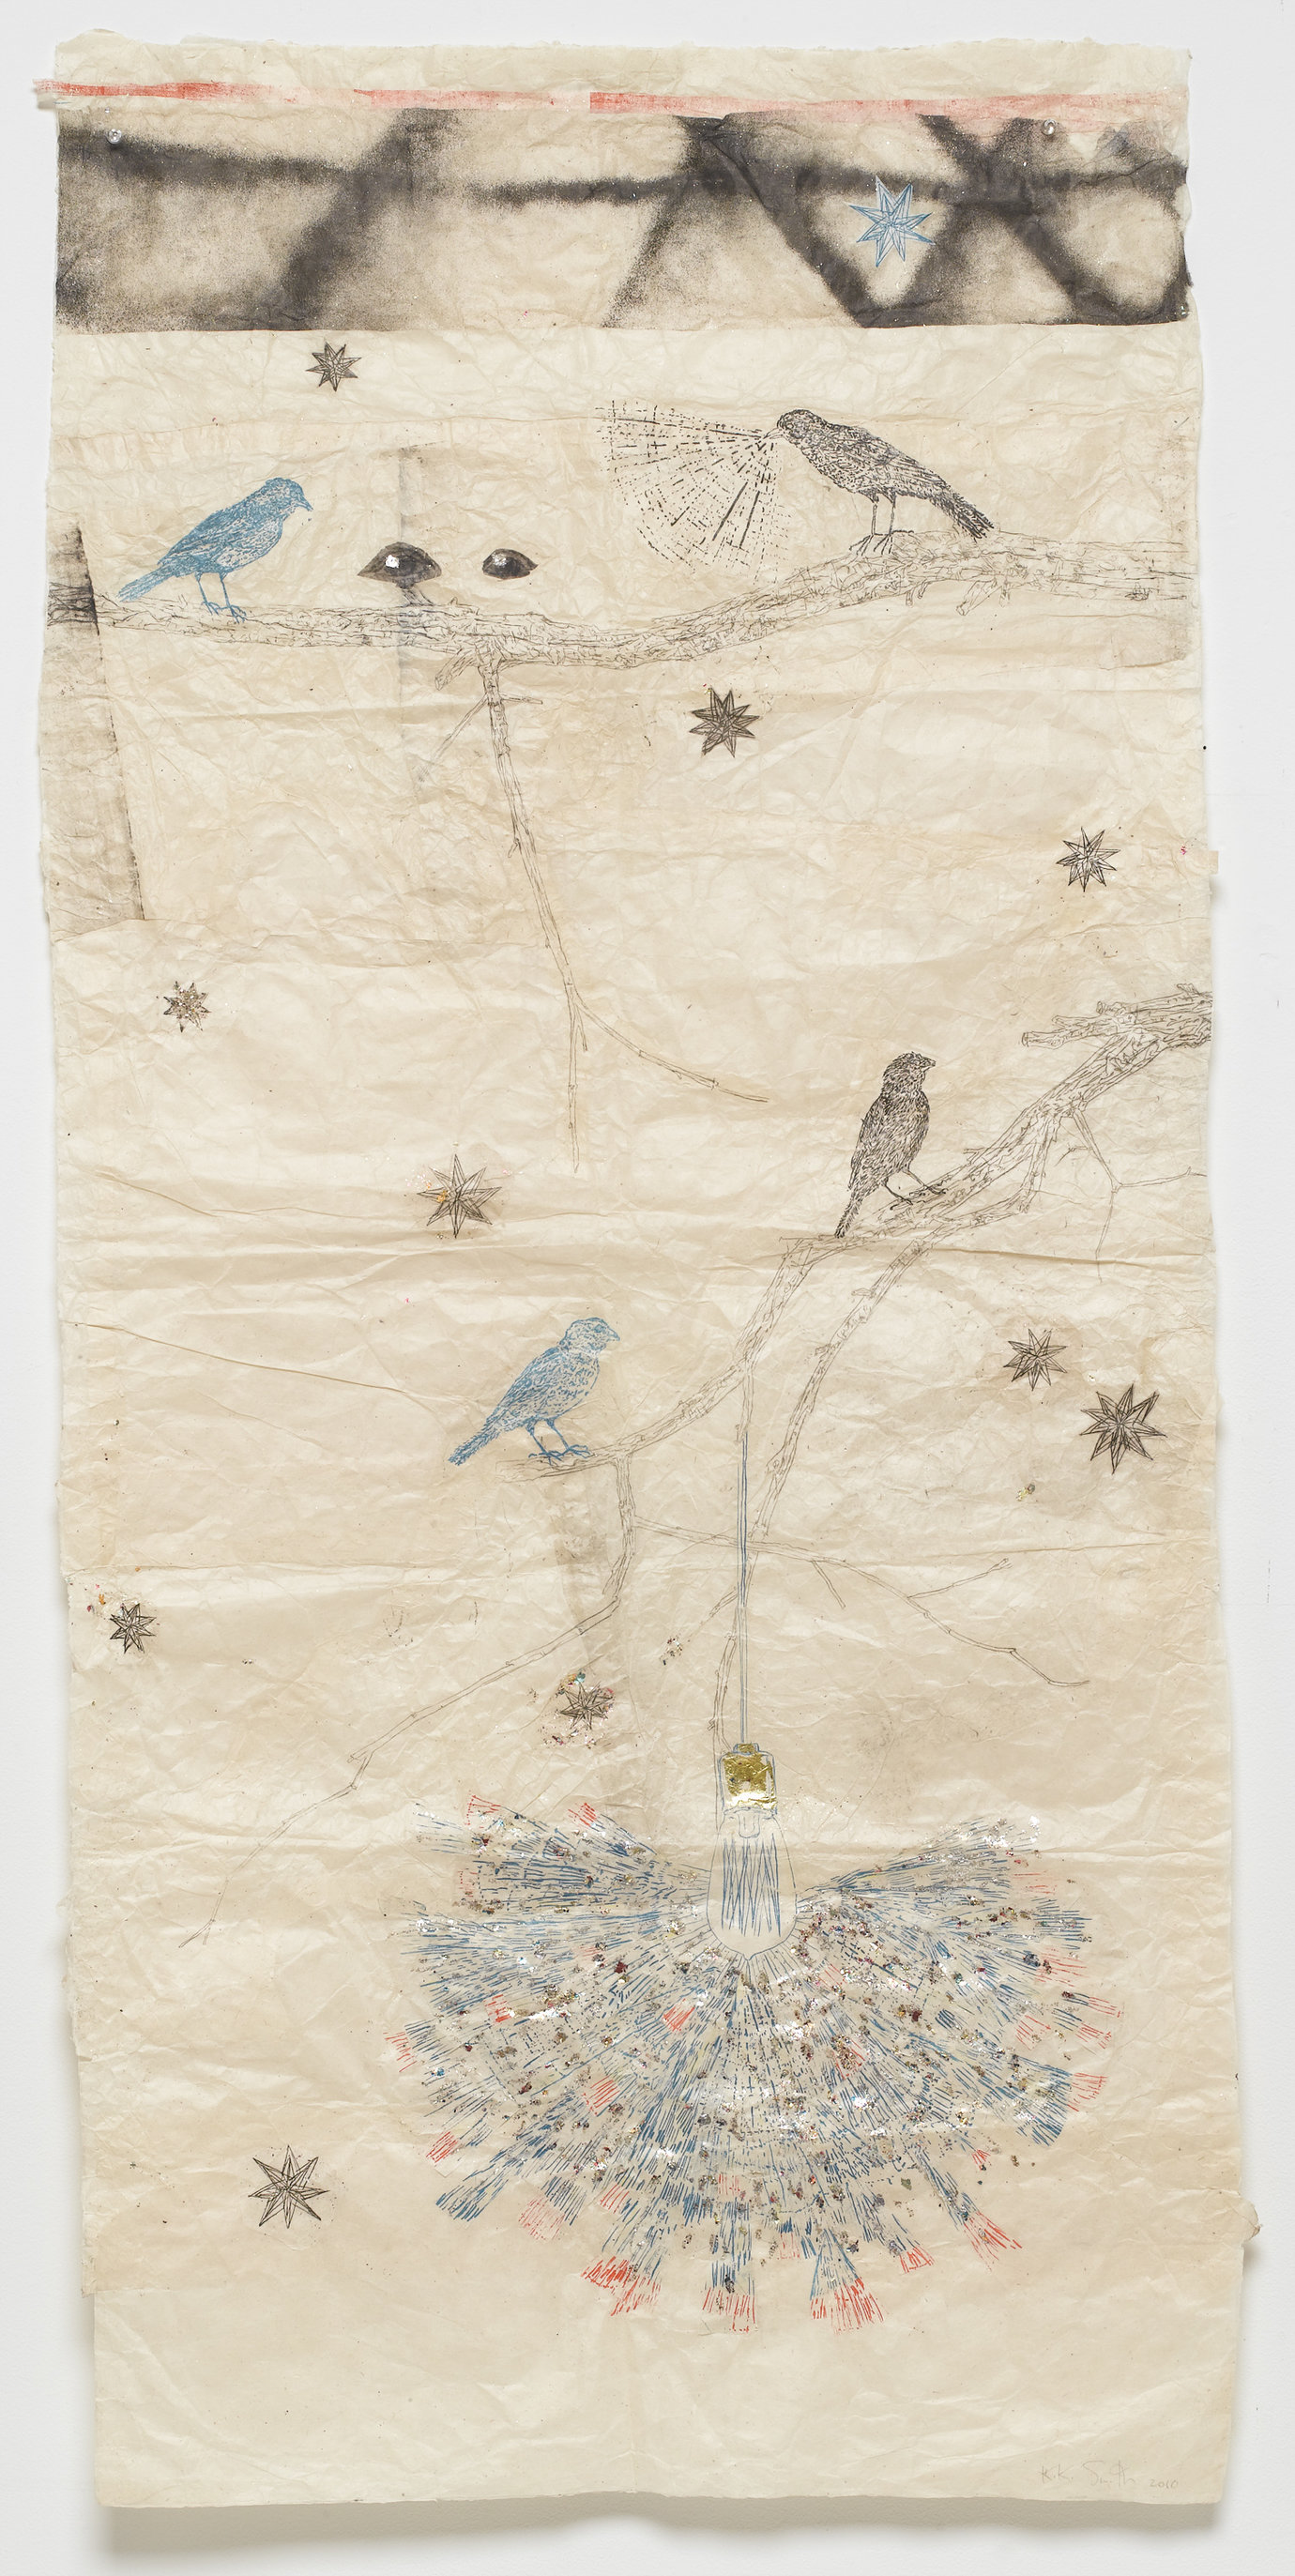 ", 2010. ink on Nepal paper with glitter, silver and gold leaf, 59-3/8"" x 28-1/4"" (150.8 cm x 71.8 cm)."